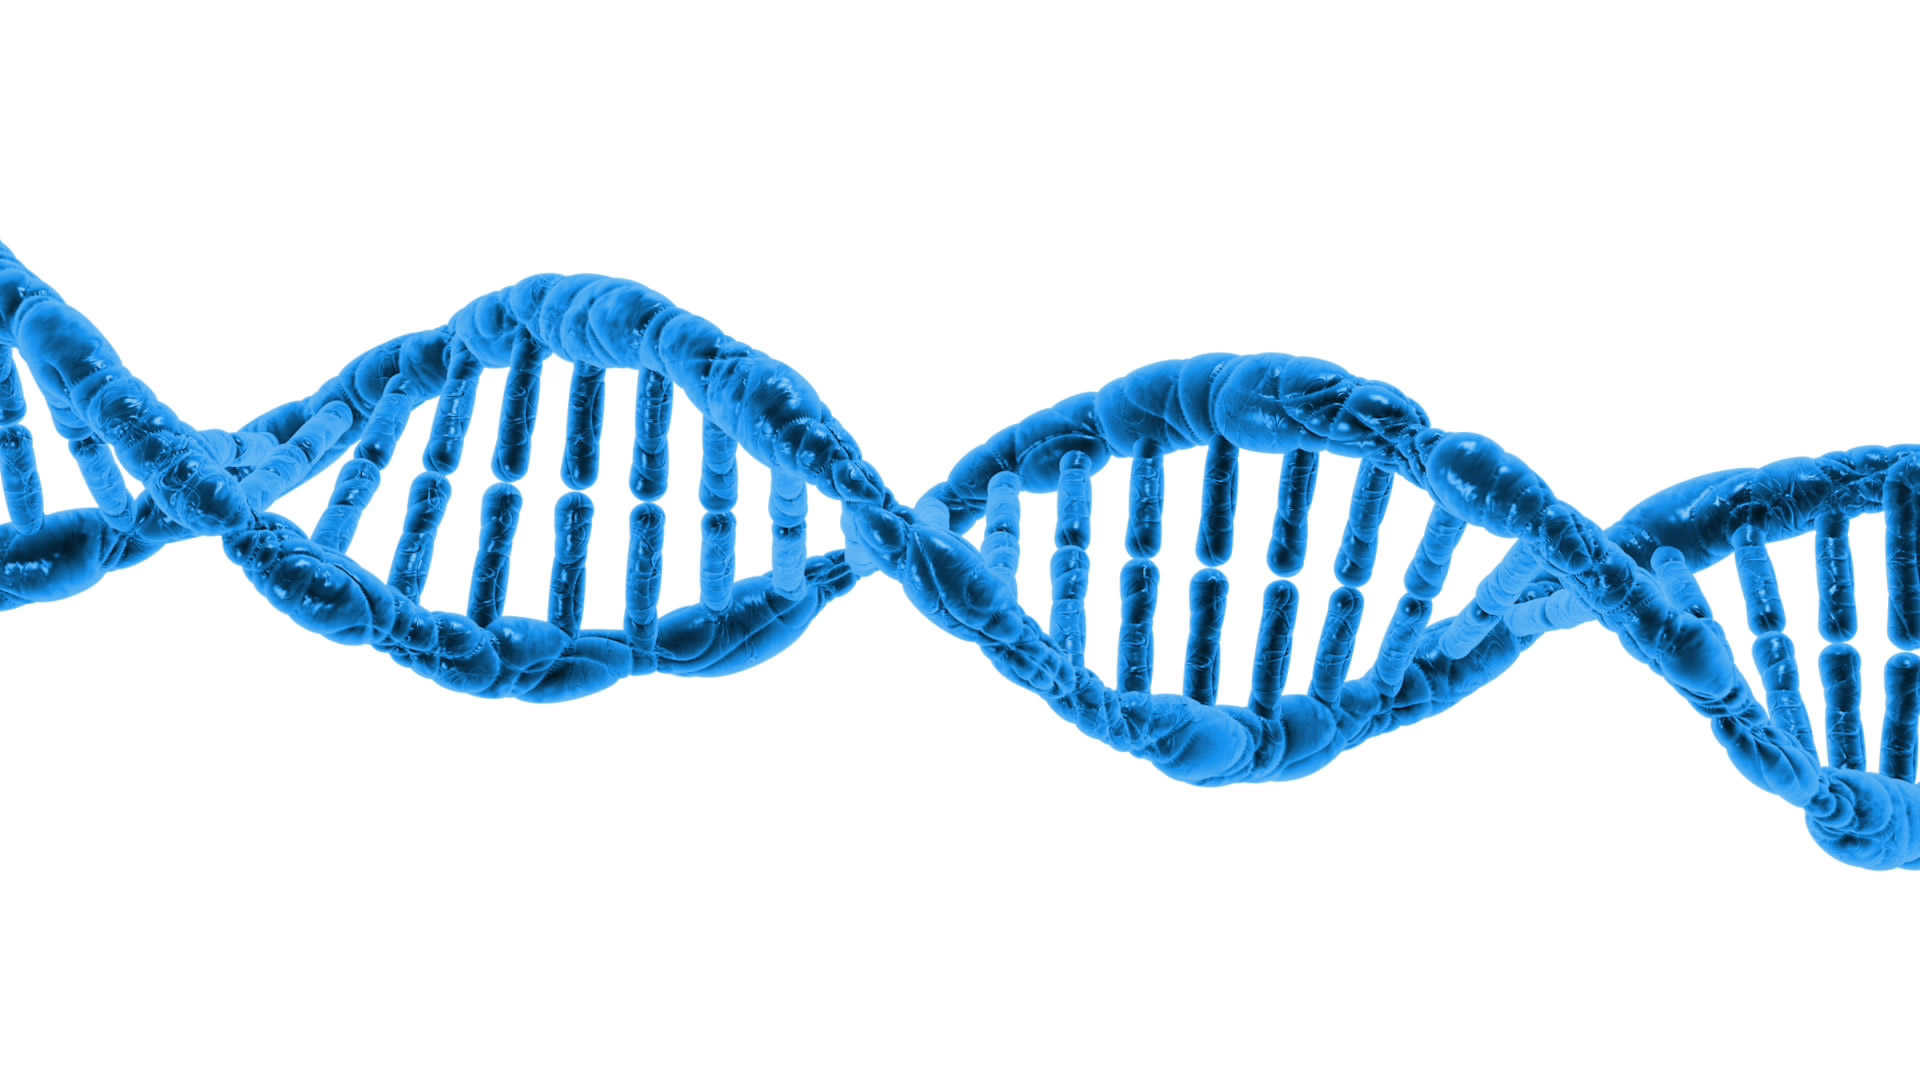 DNA High Resolution Backgrounds